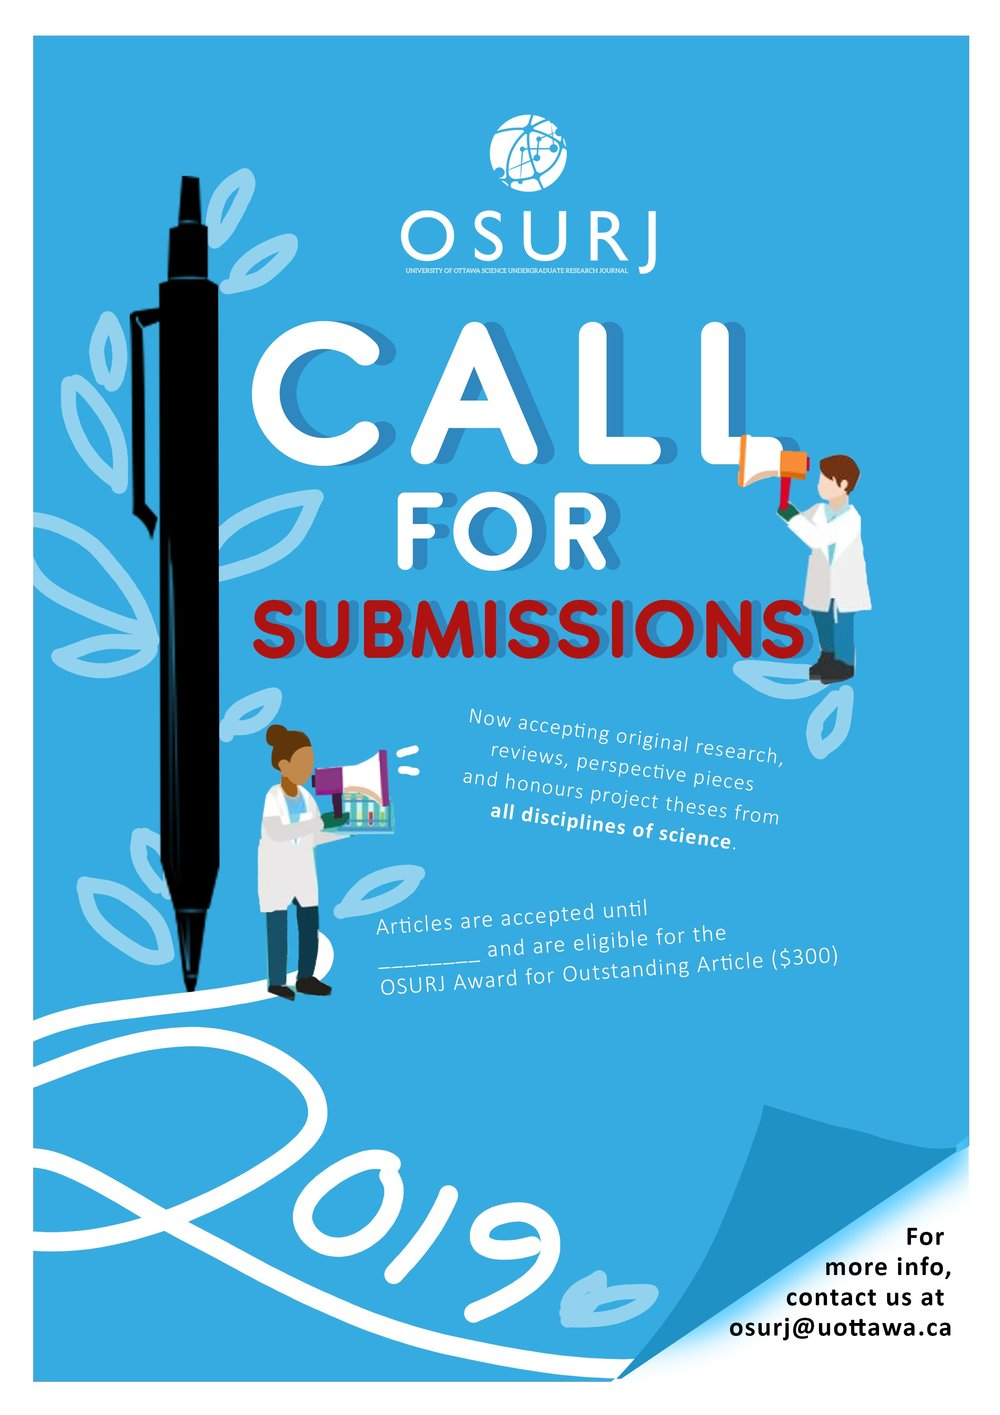 Now accepting submissions - Interested in getting published? We are now accepting submissions for the 2019 year. Click here for more info.